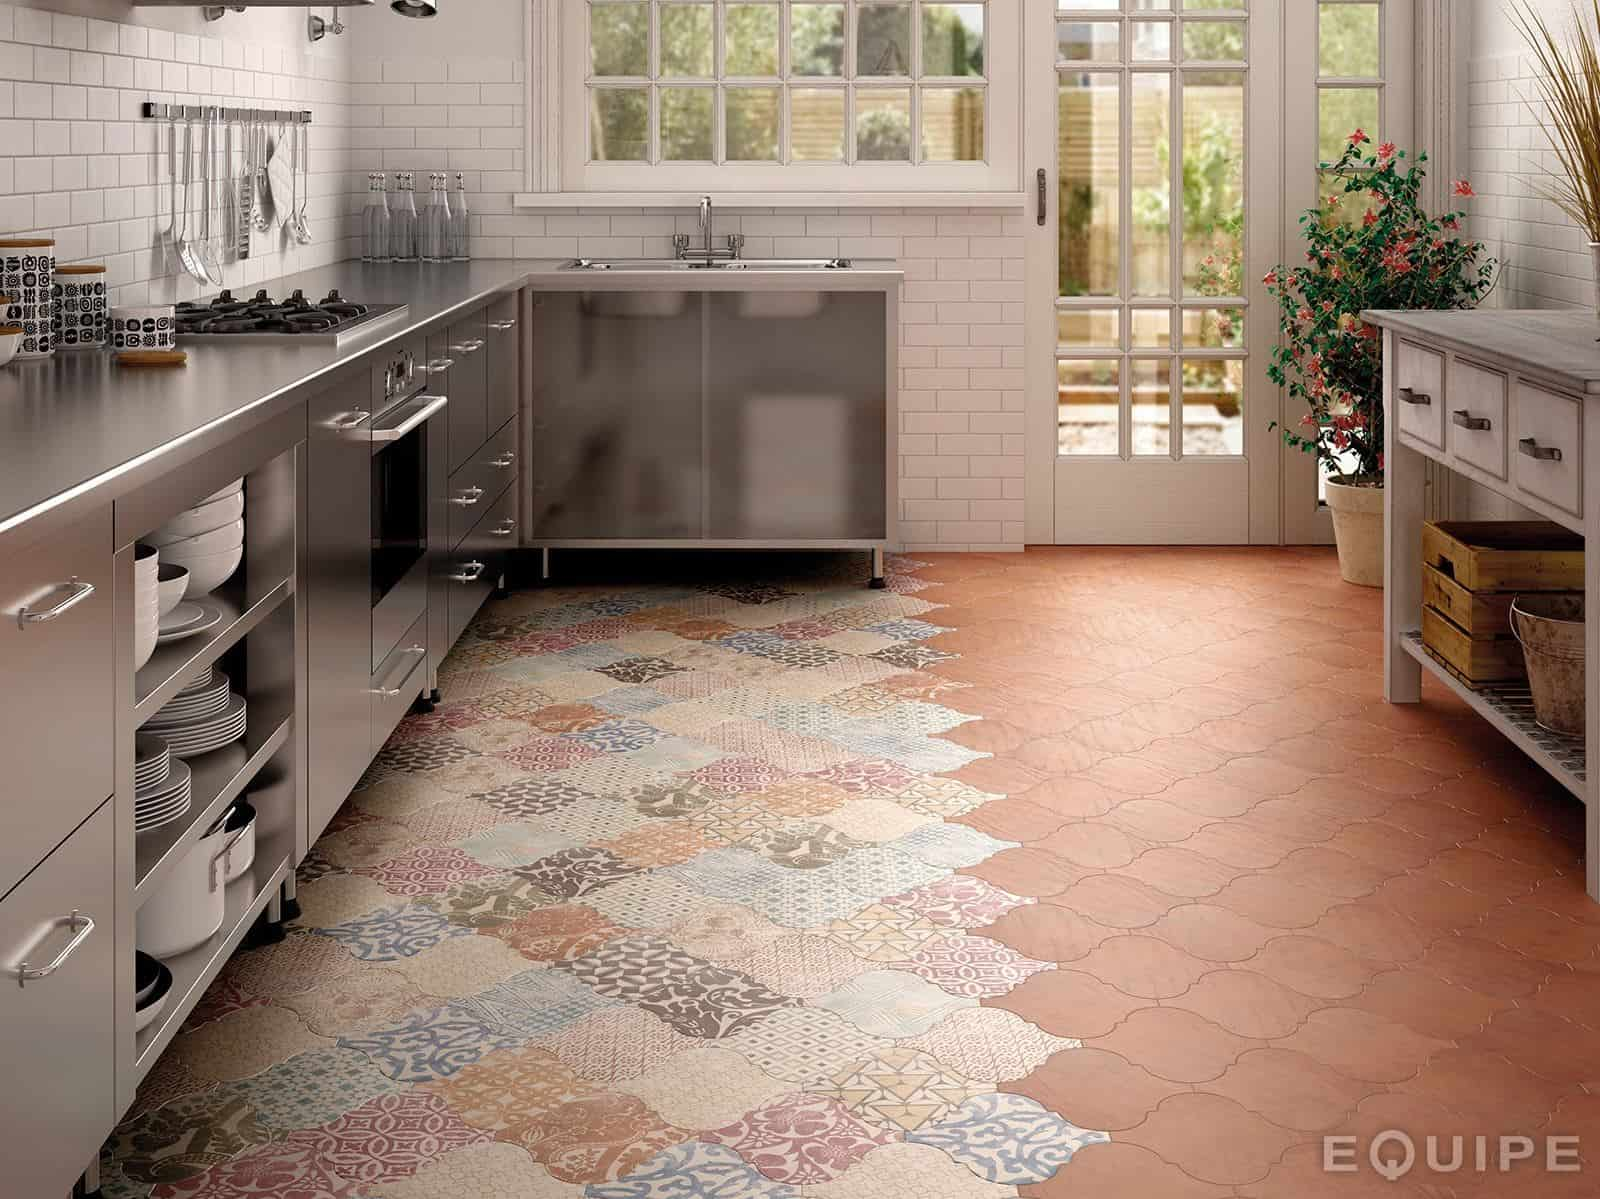 21 arabesque tile ideas for floor wall and backsplash flooring for kitchen View in gallery arabesque tile kitchen floor patchwork equipe 4